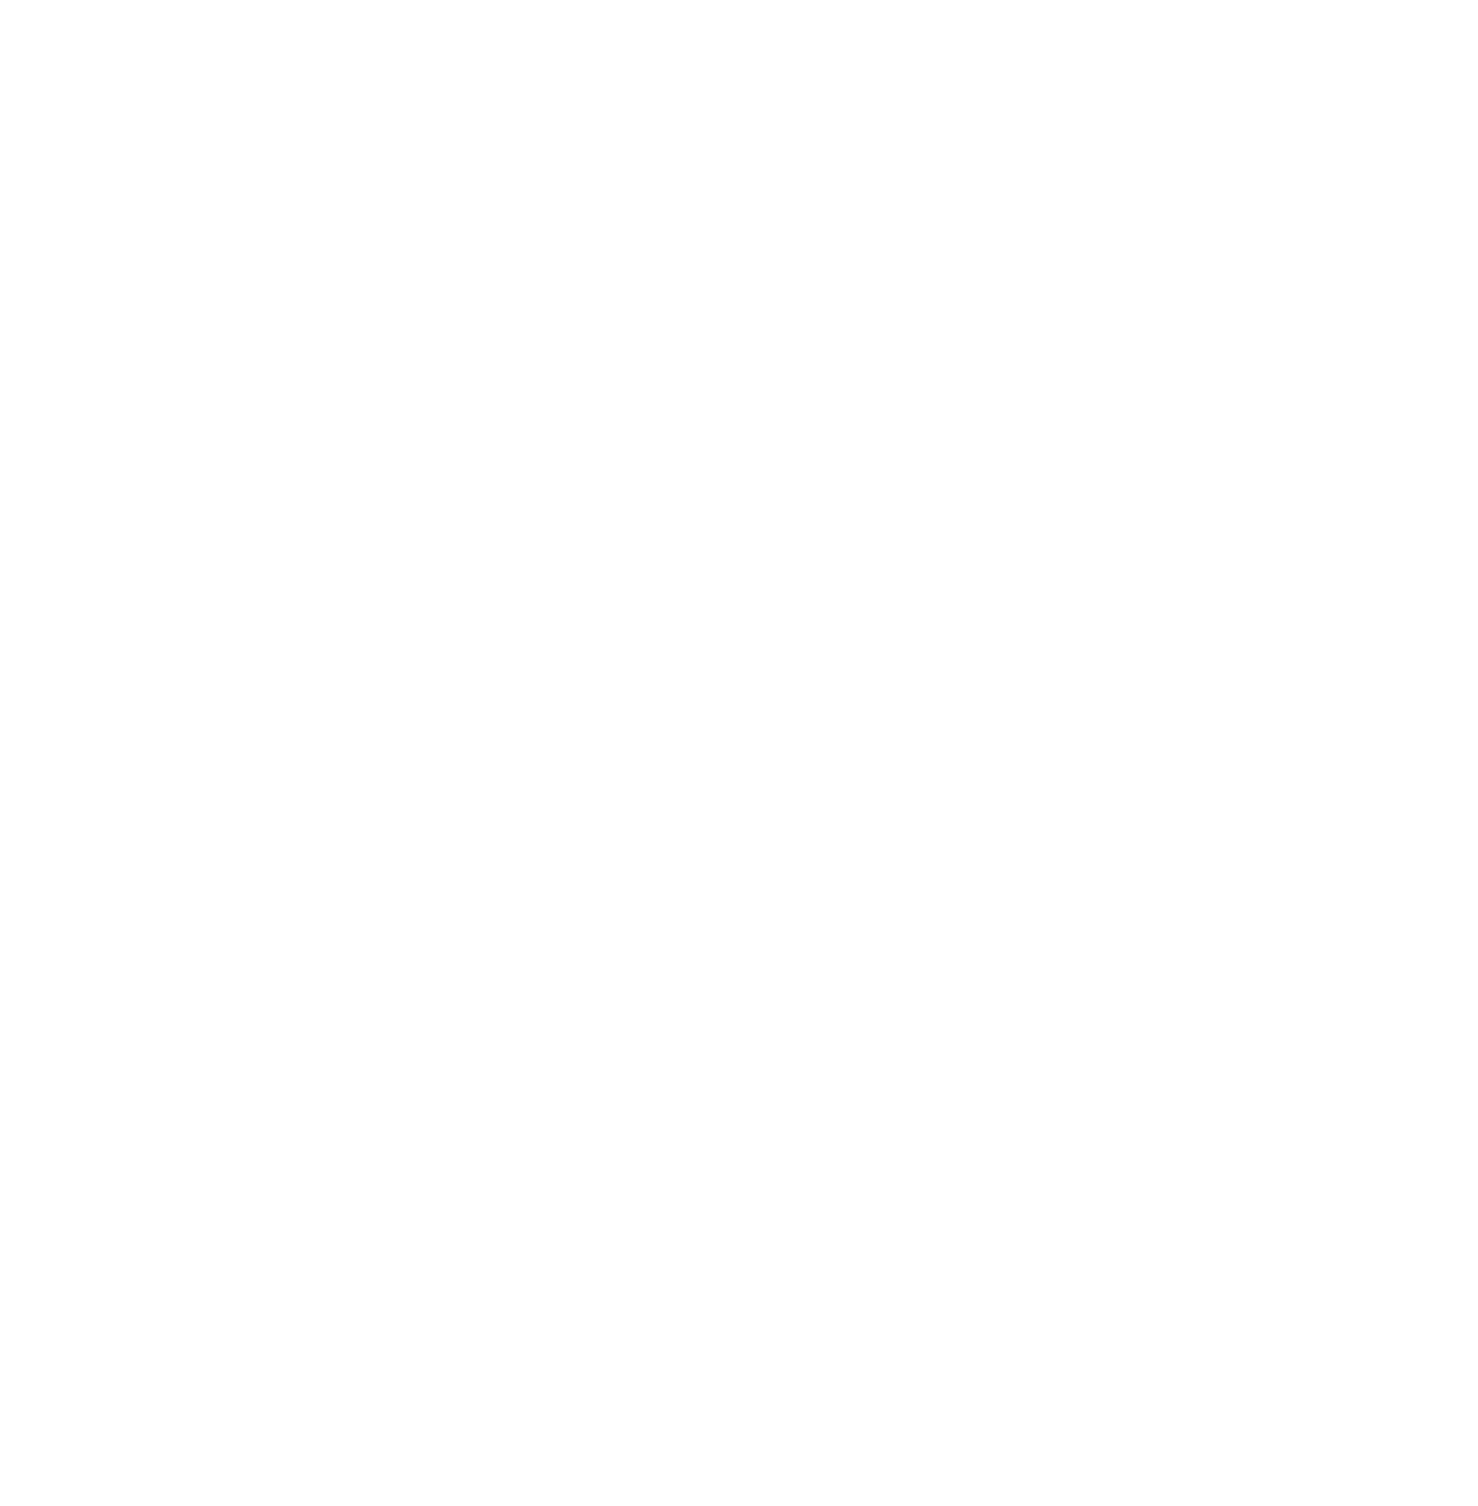 Rothers Group